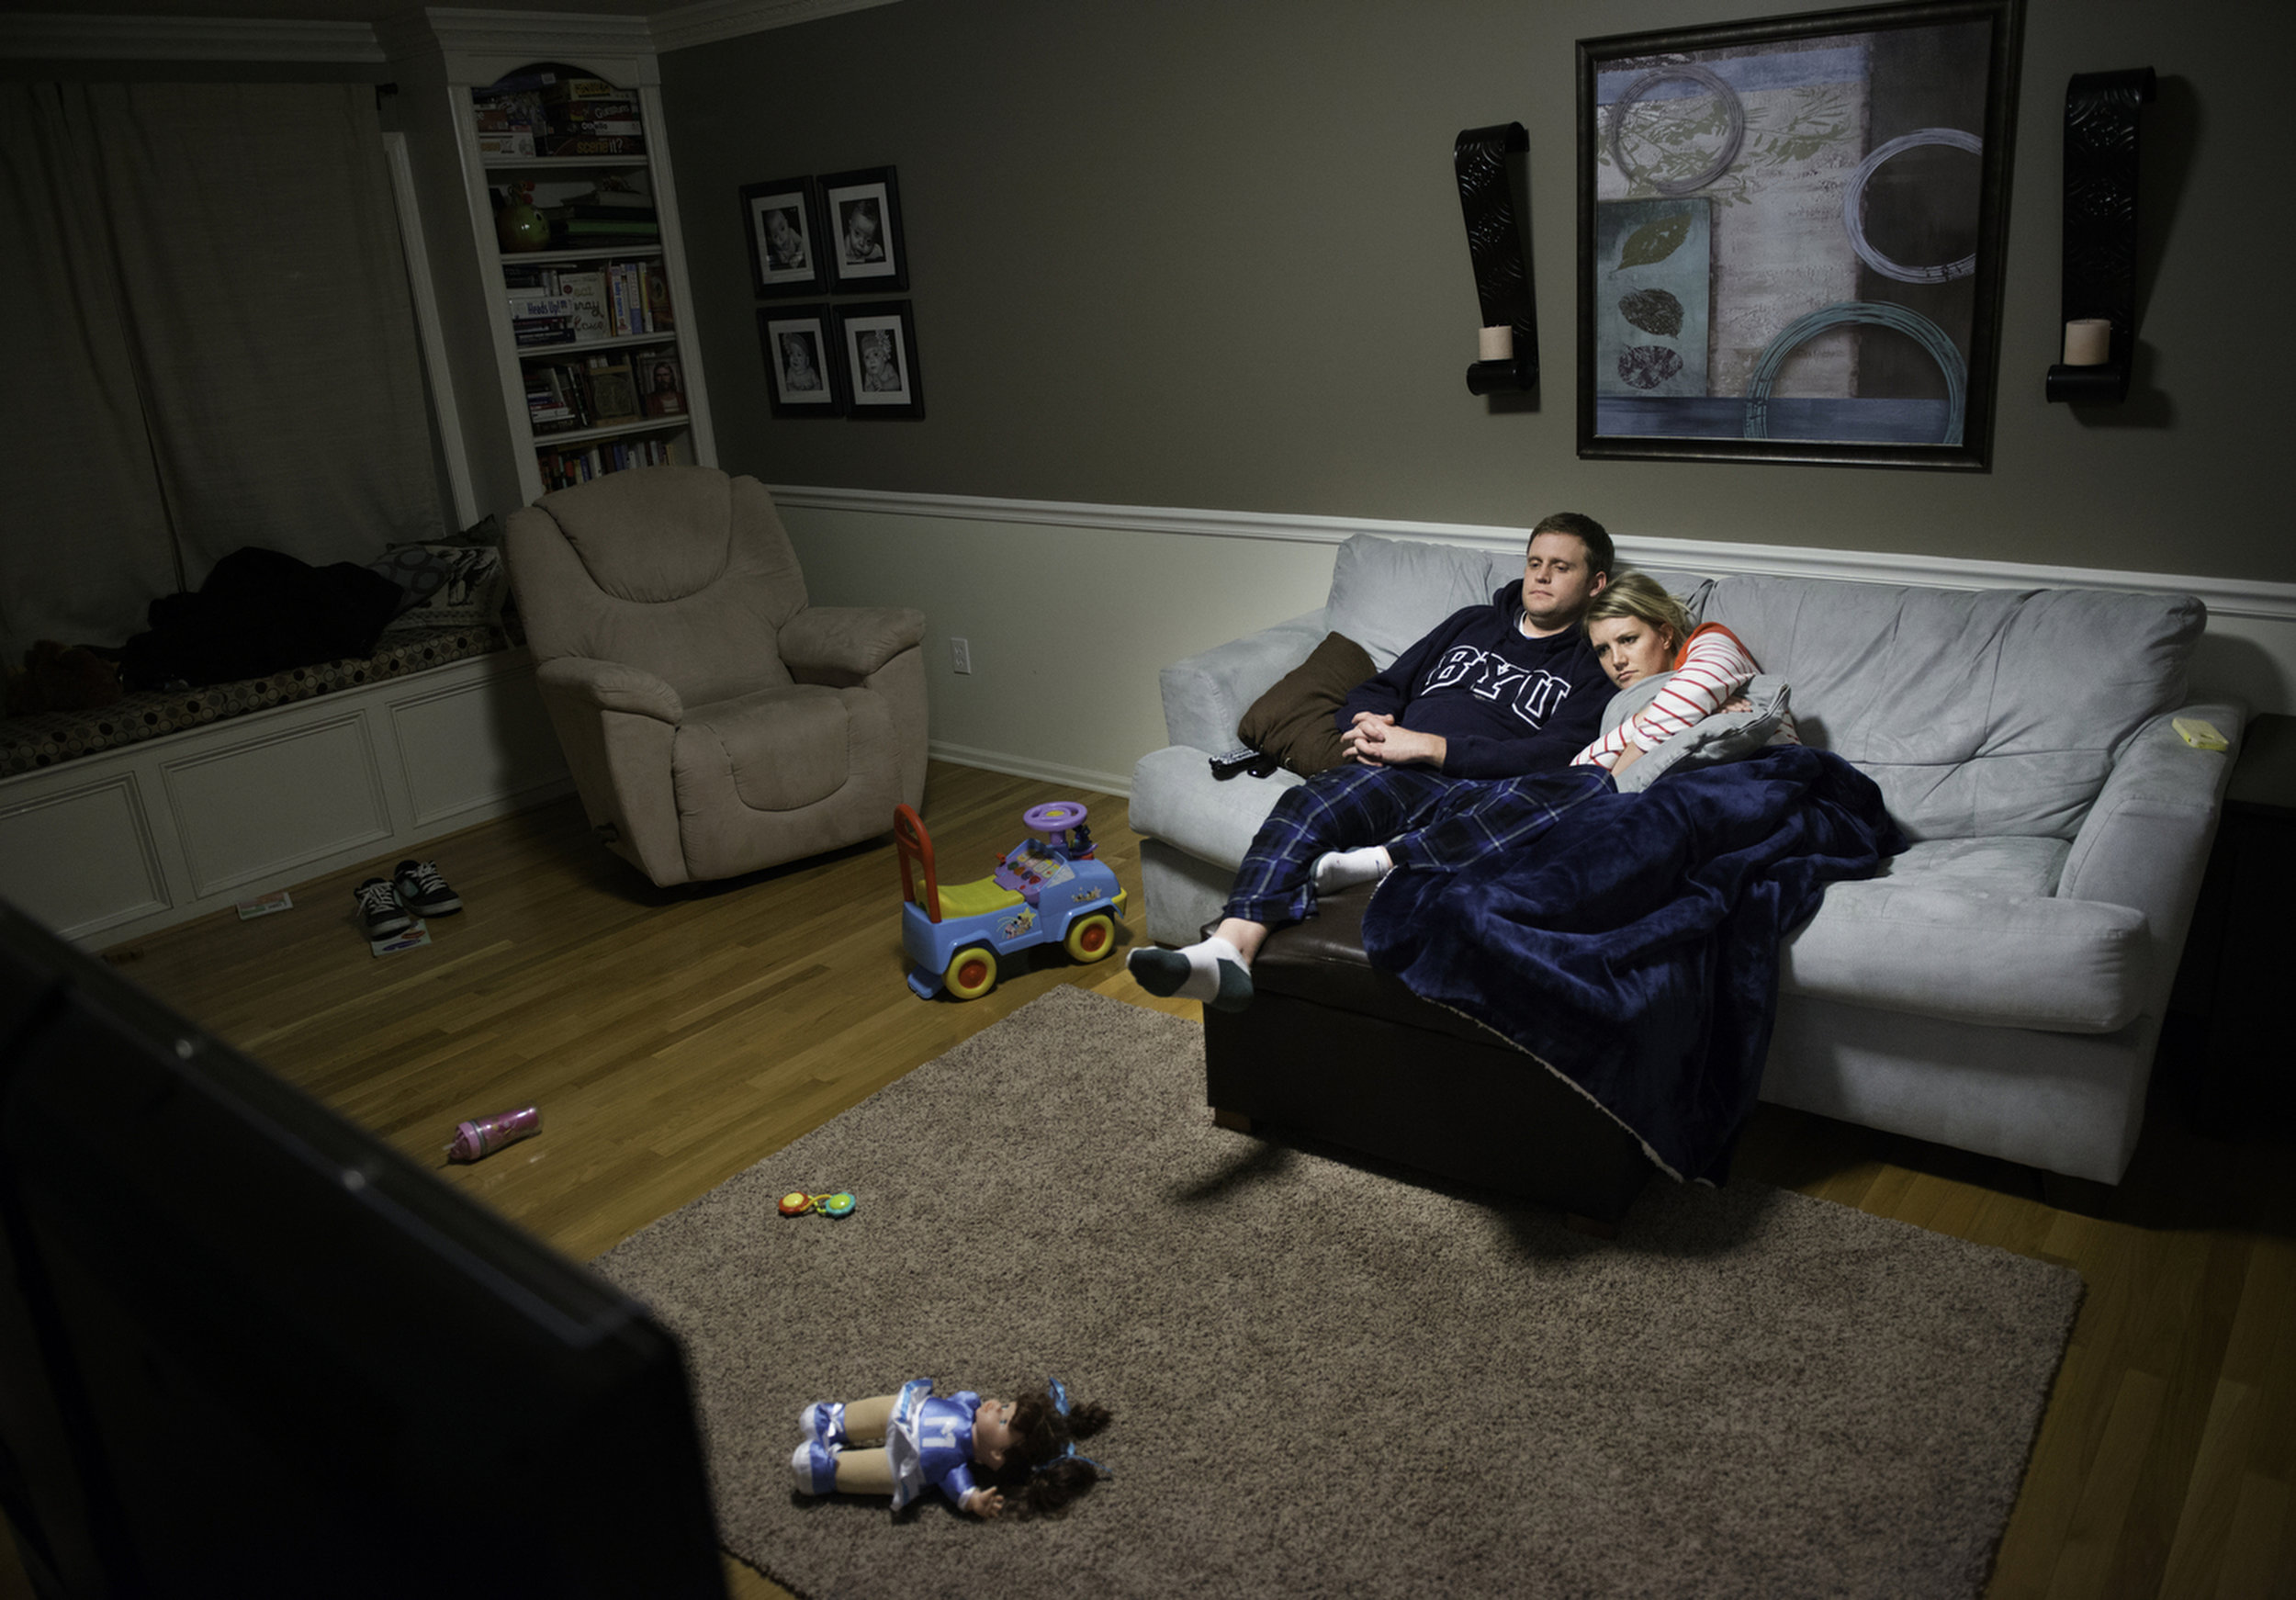 Cameron and Courtney watch a movie to unwind after a long day on Nov. 21, 2014. Most nights they fall asleep on the couch or go to bed early because they are so exhausted and drained.